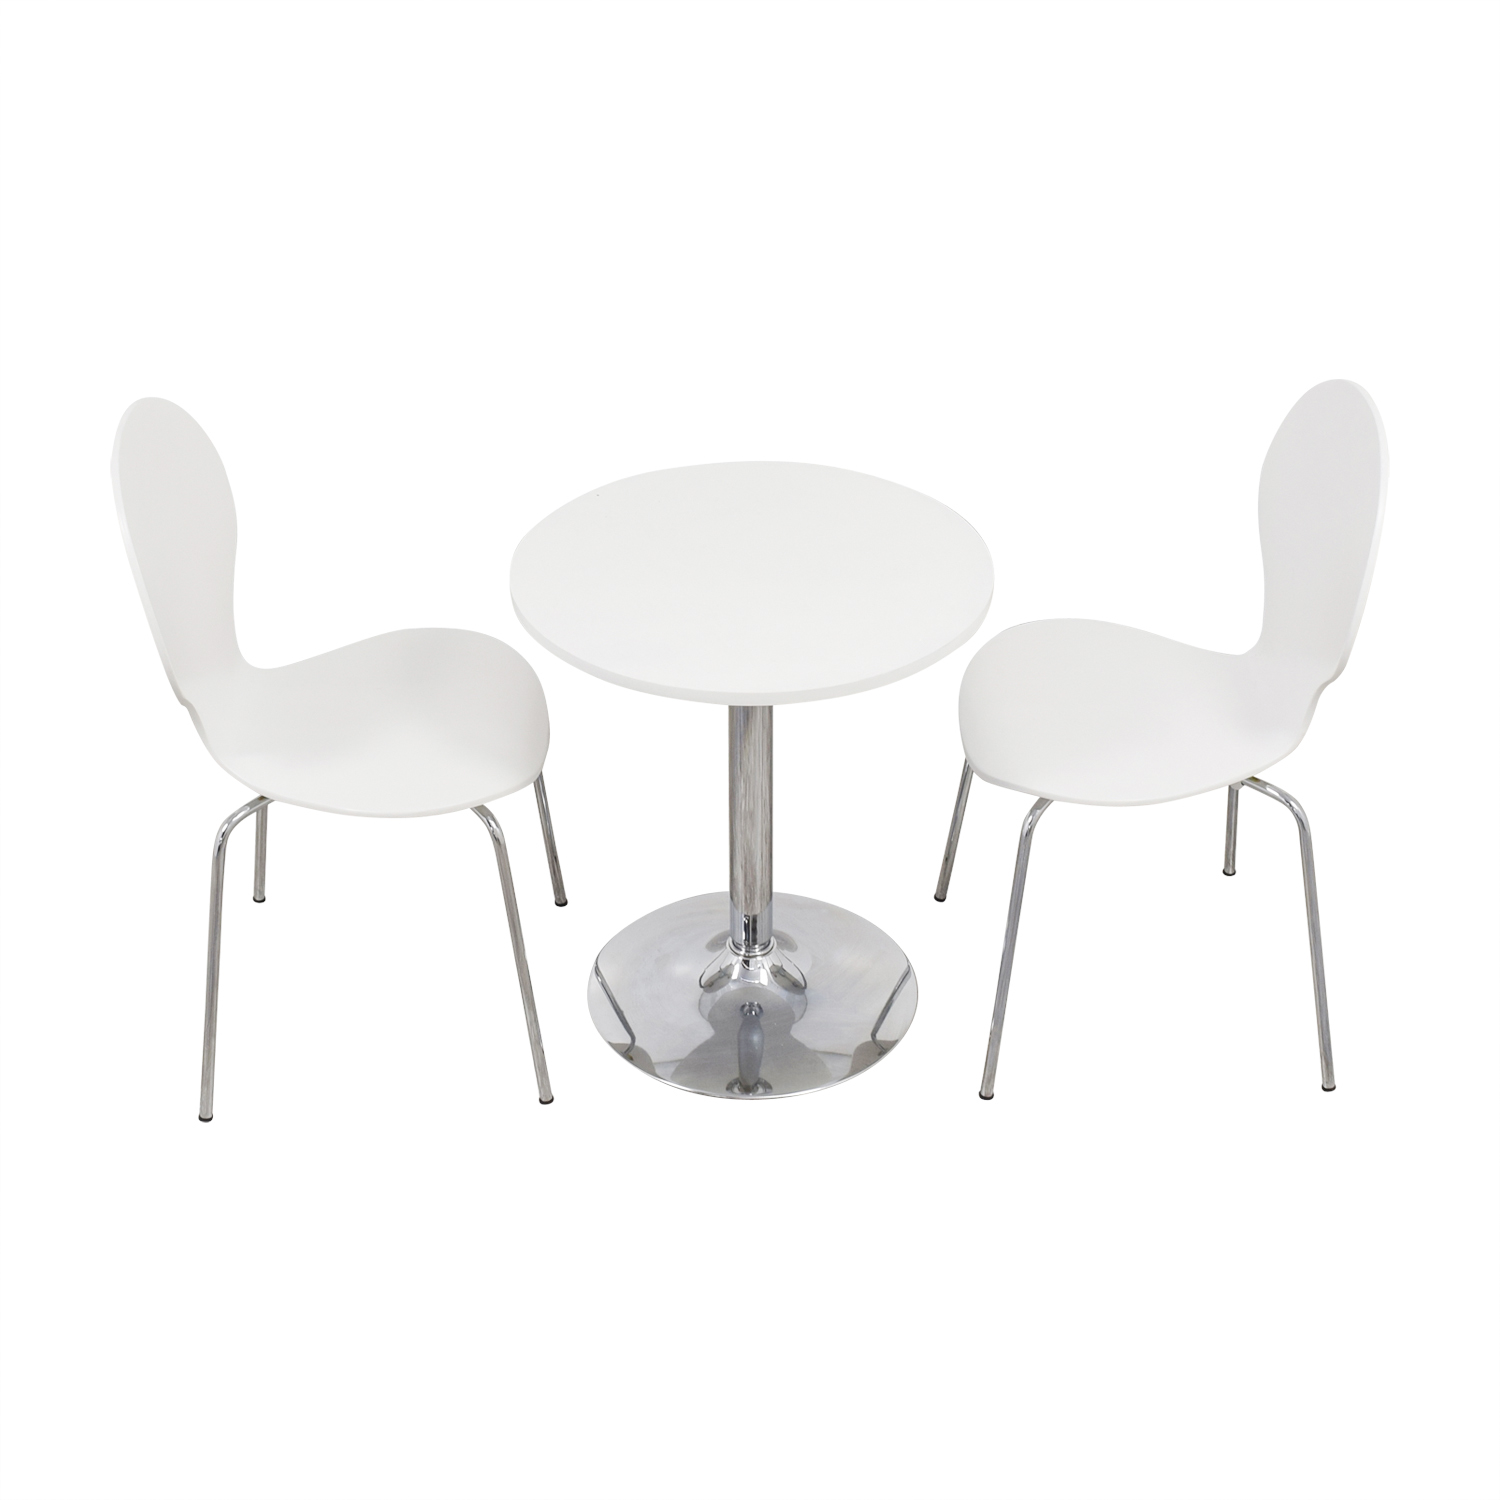 Dorel Living Dinner Table and Chairs sale